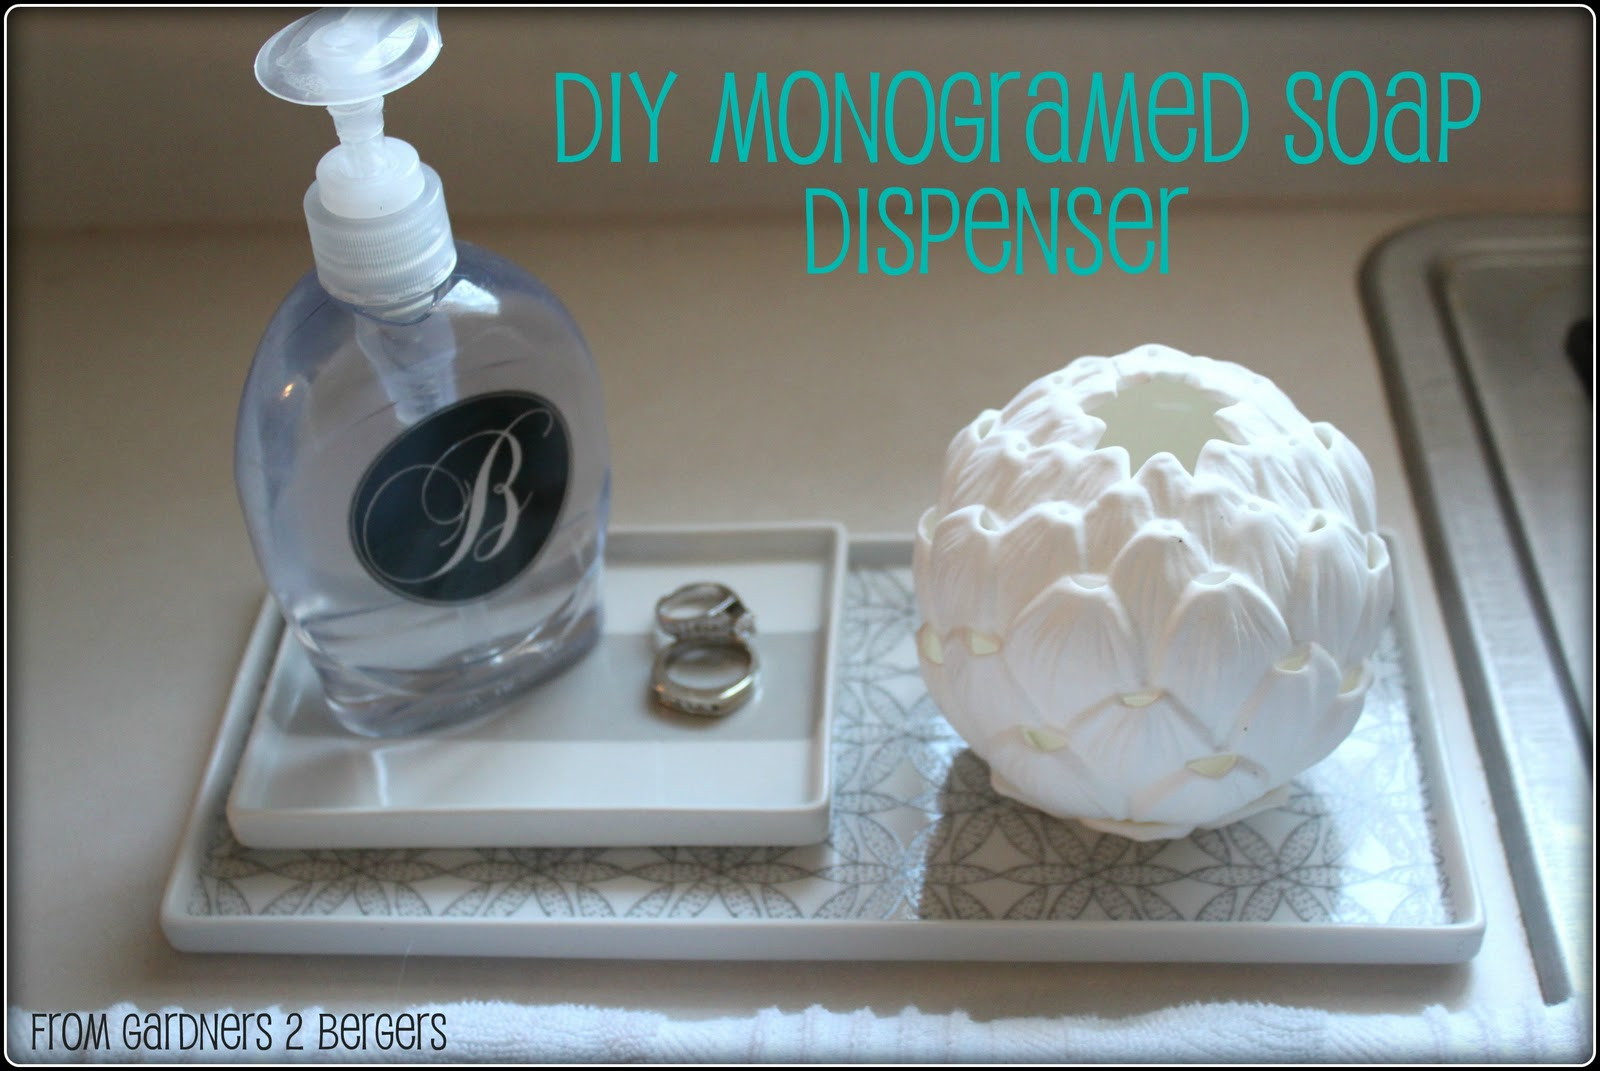 Monogramed-Soap-Dispensers-Tutorial